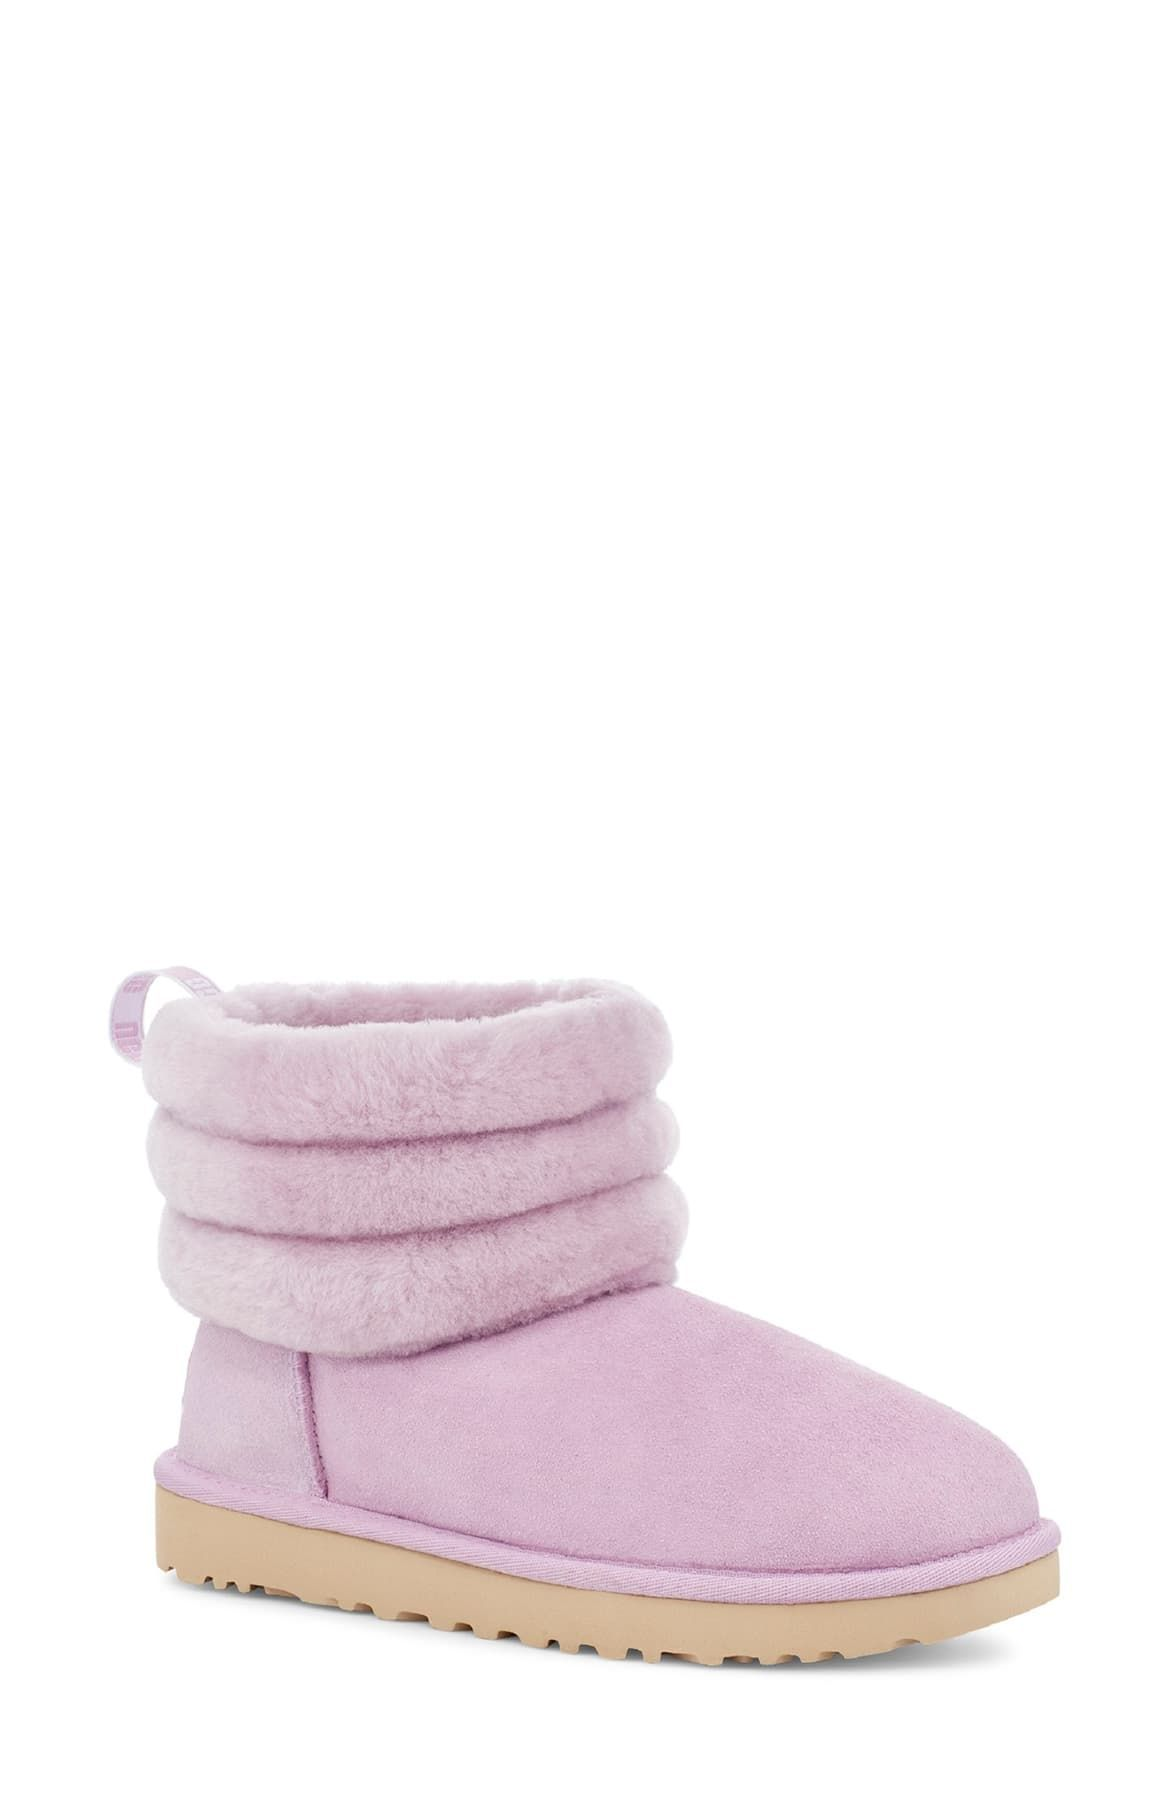 Nordstrom Rack's Taking Up to 50% off Ugg's Super-Cozy Shoes